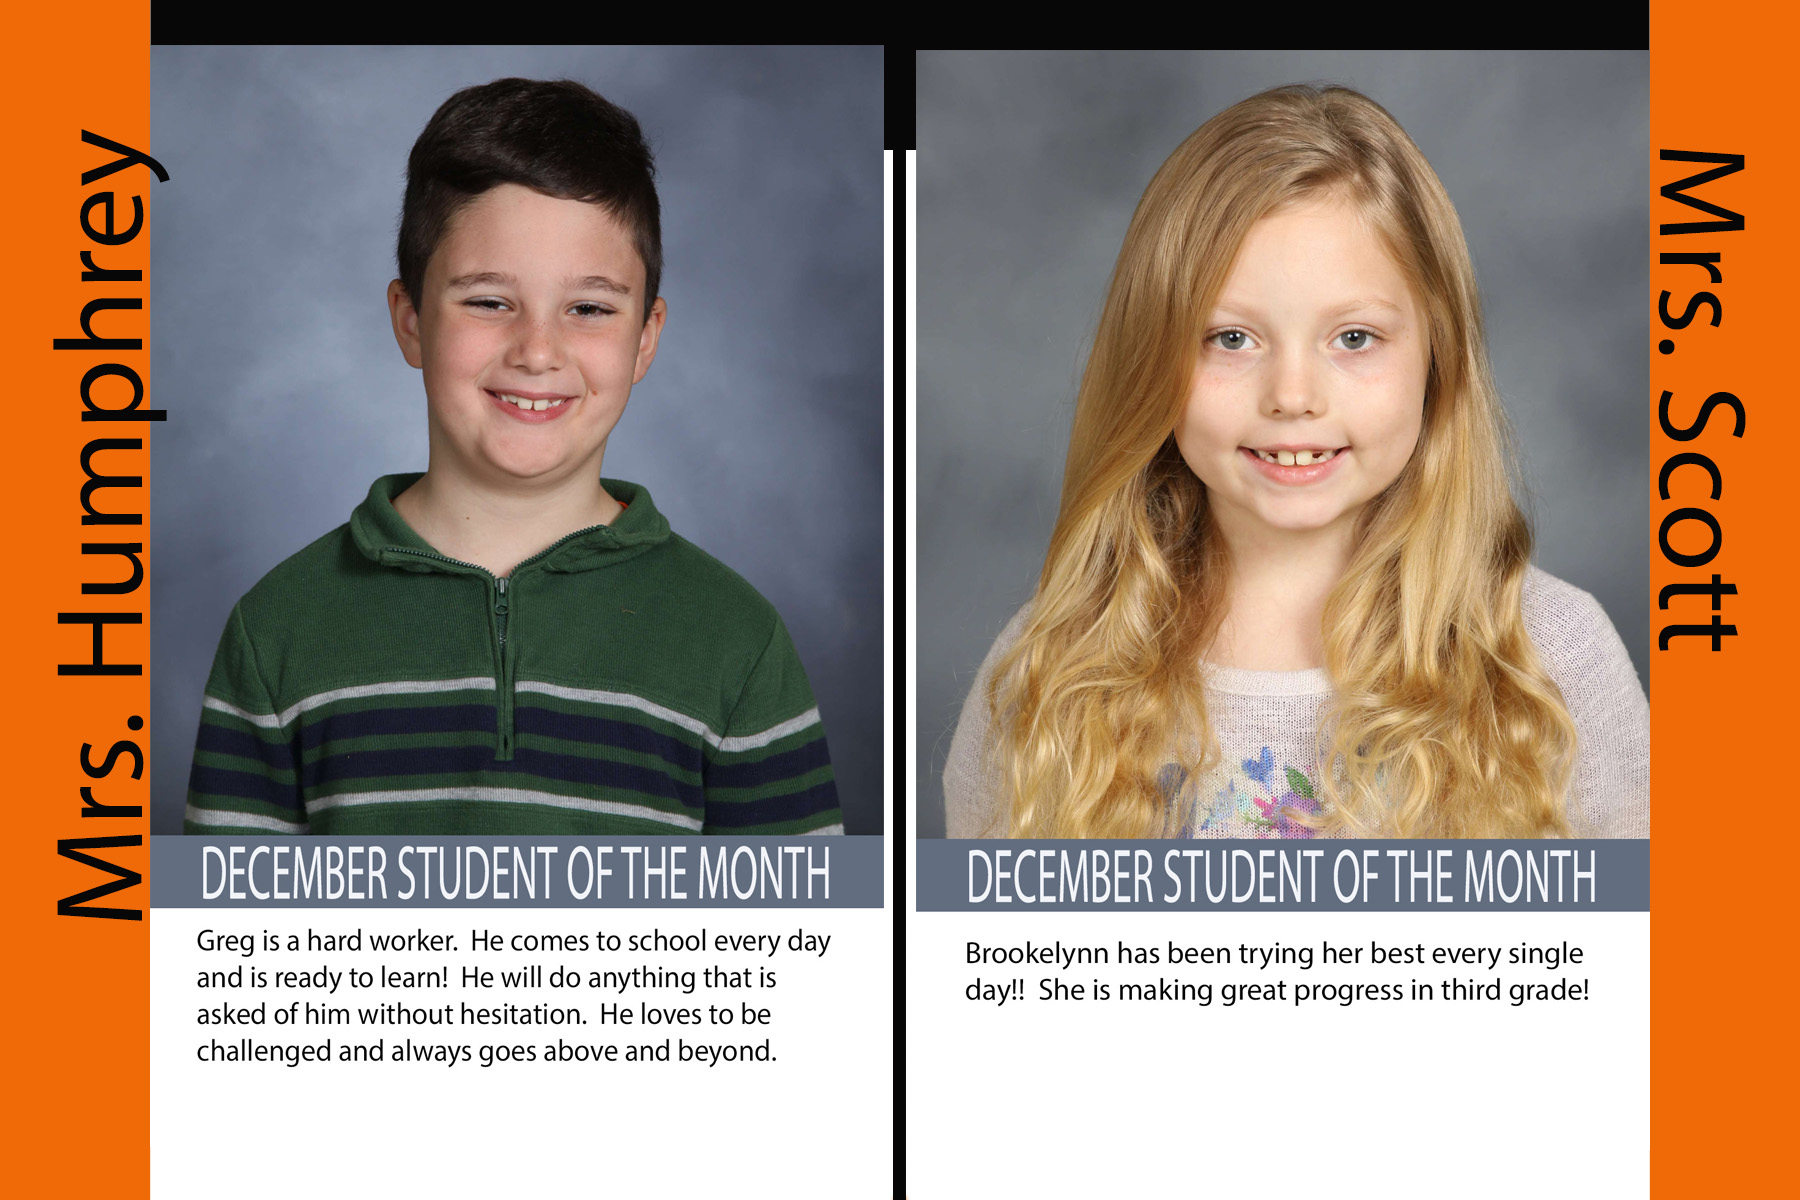 Third Grade December Student of the Month